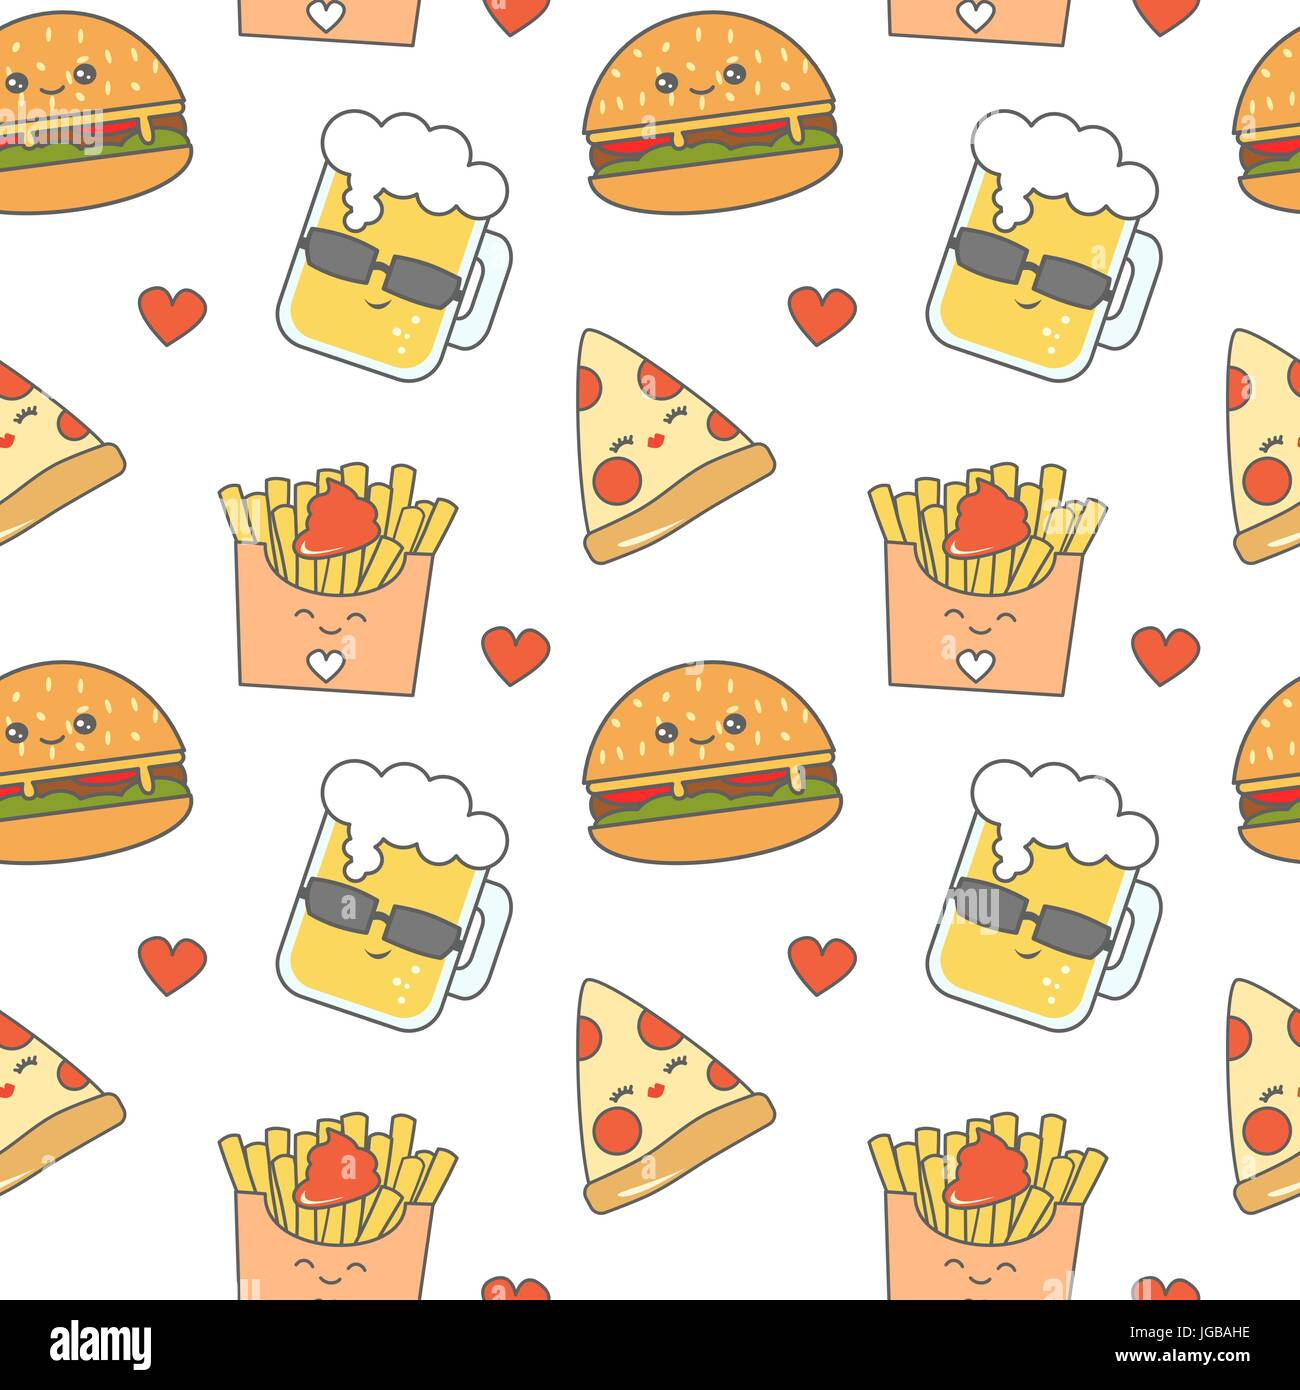 Cute Cartoon Fast Food Seamless Vector Pattern Background Stock